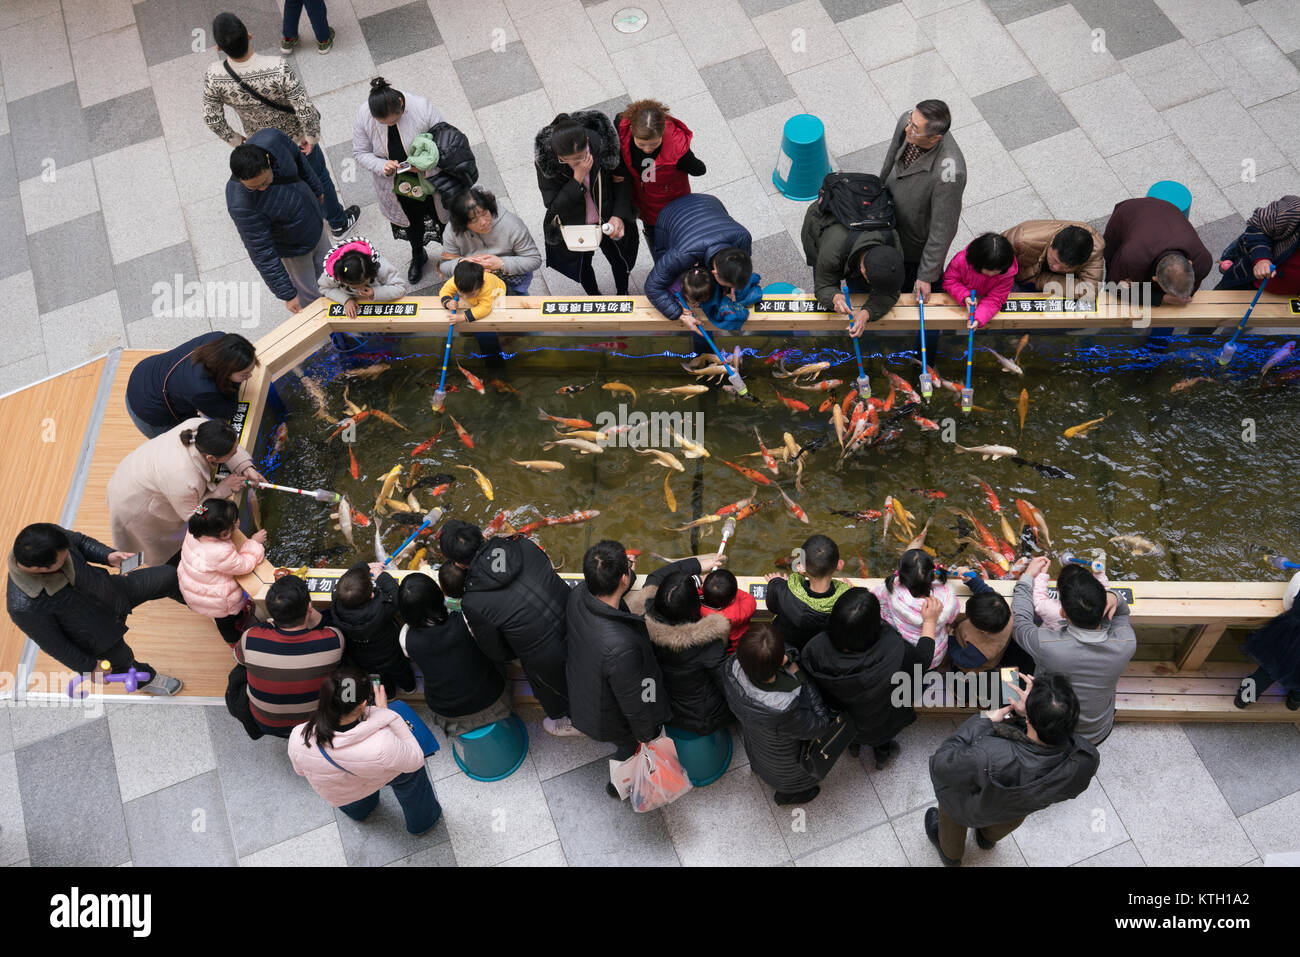 Wuhan Hubei China, 24 December 2017: People feeding Koi amur carp in a pond with fish food inside a shopping mall - Stock Image